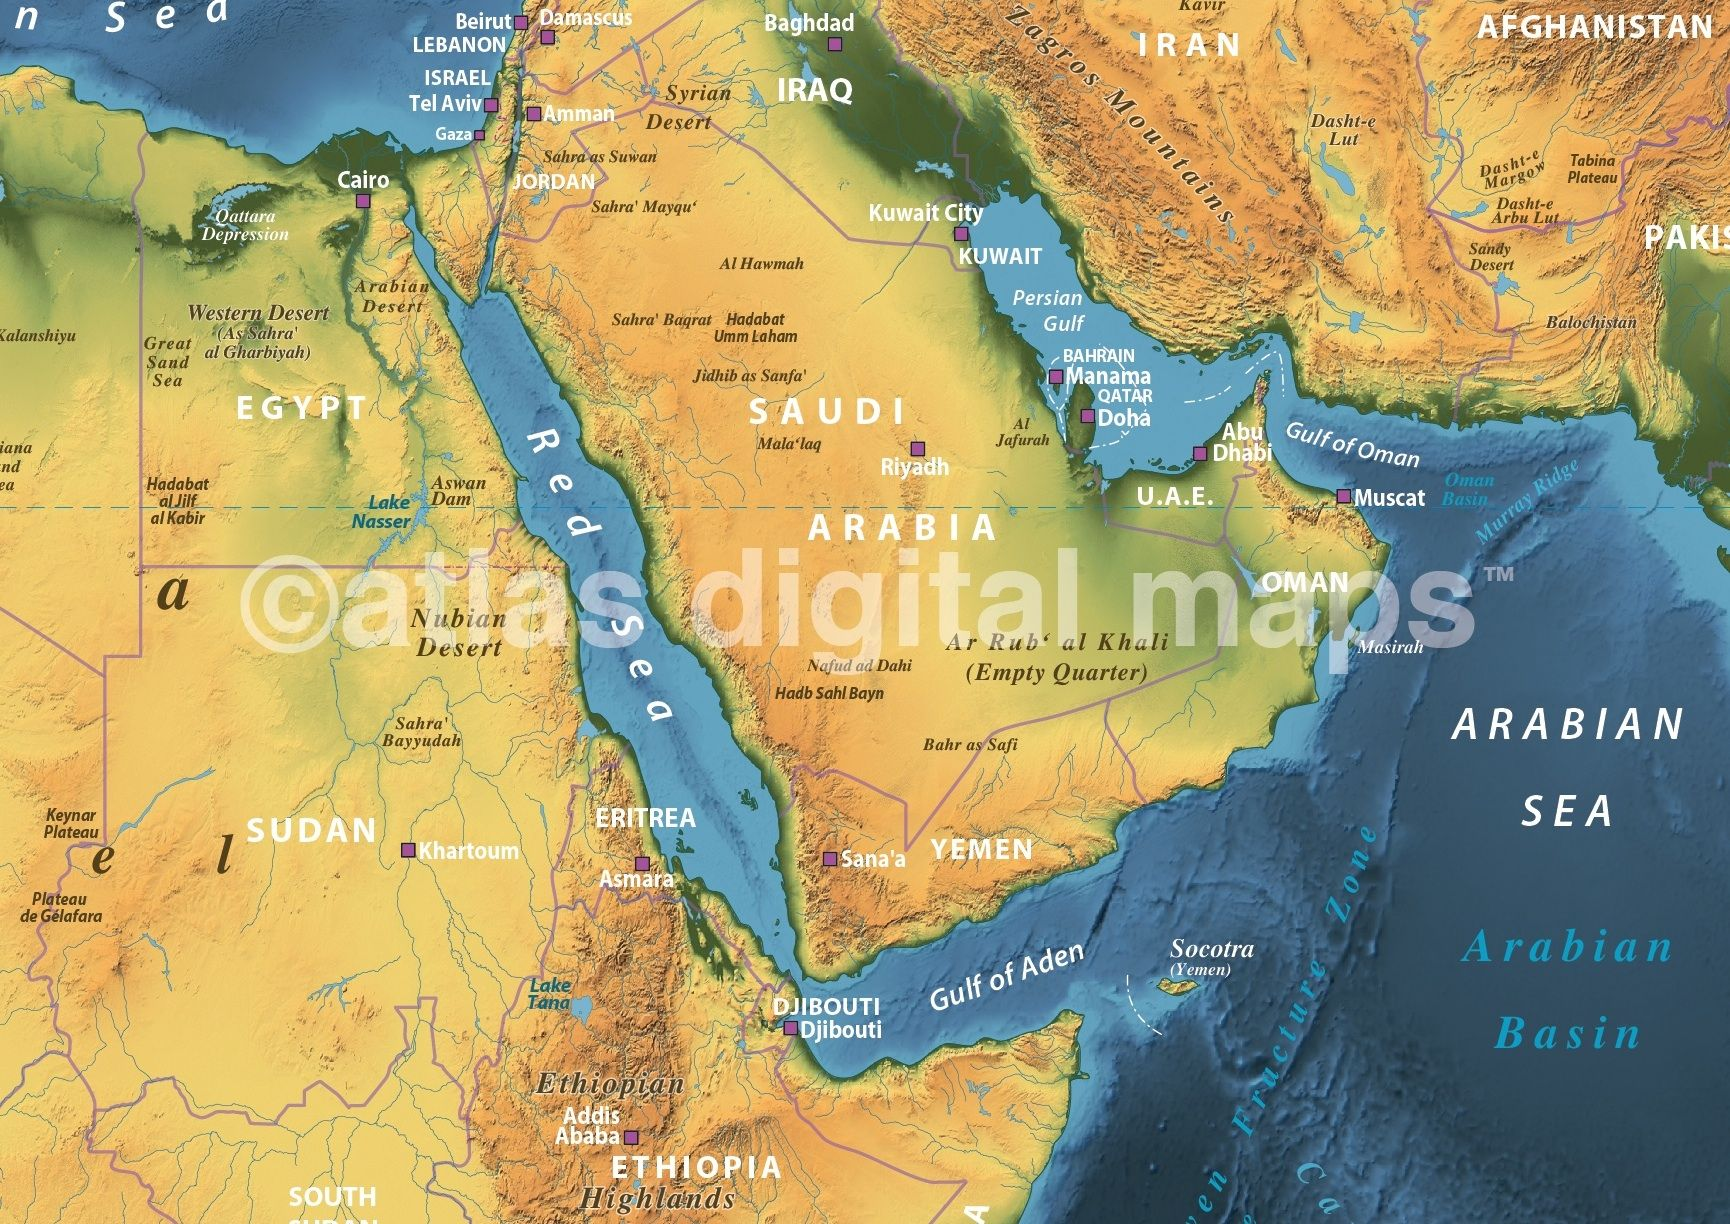 Land and sea relief map of saudi arabia and east africa with navy land and sea relief map of saudi arabia and east africa with navy sea detail gumiabroncs Gallery